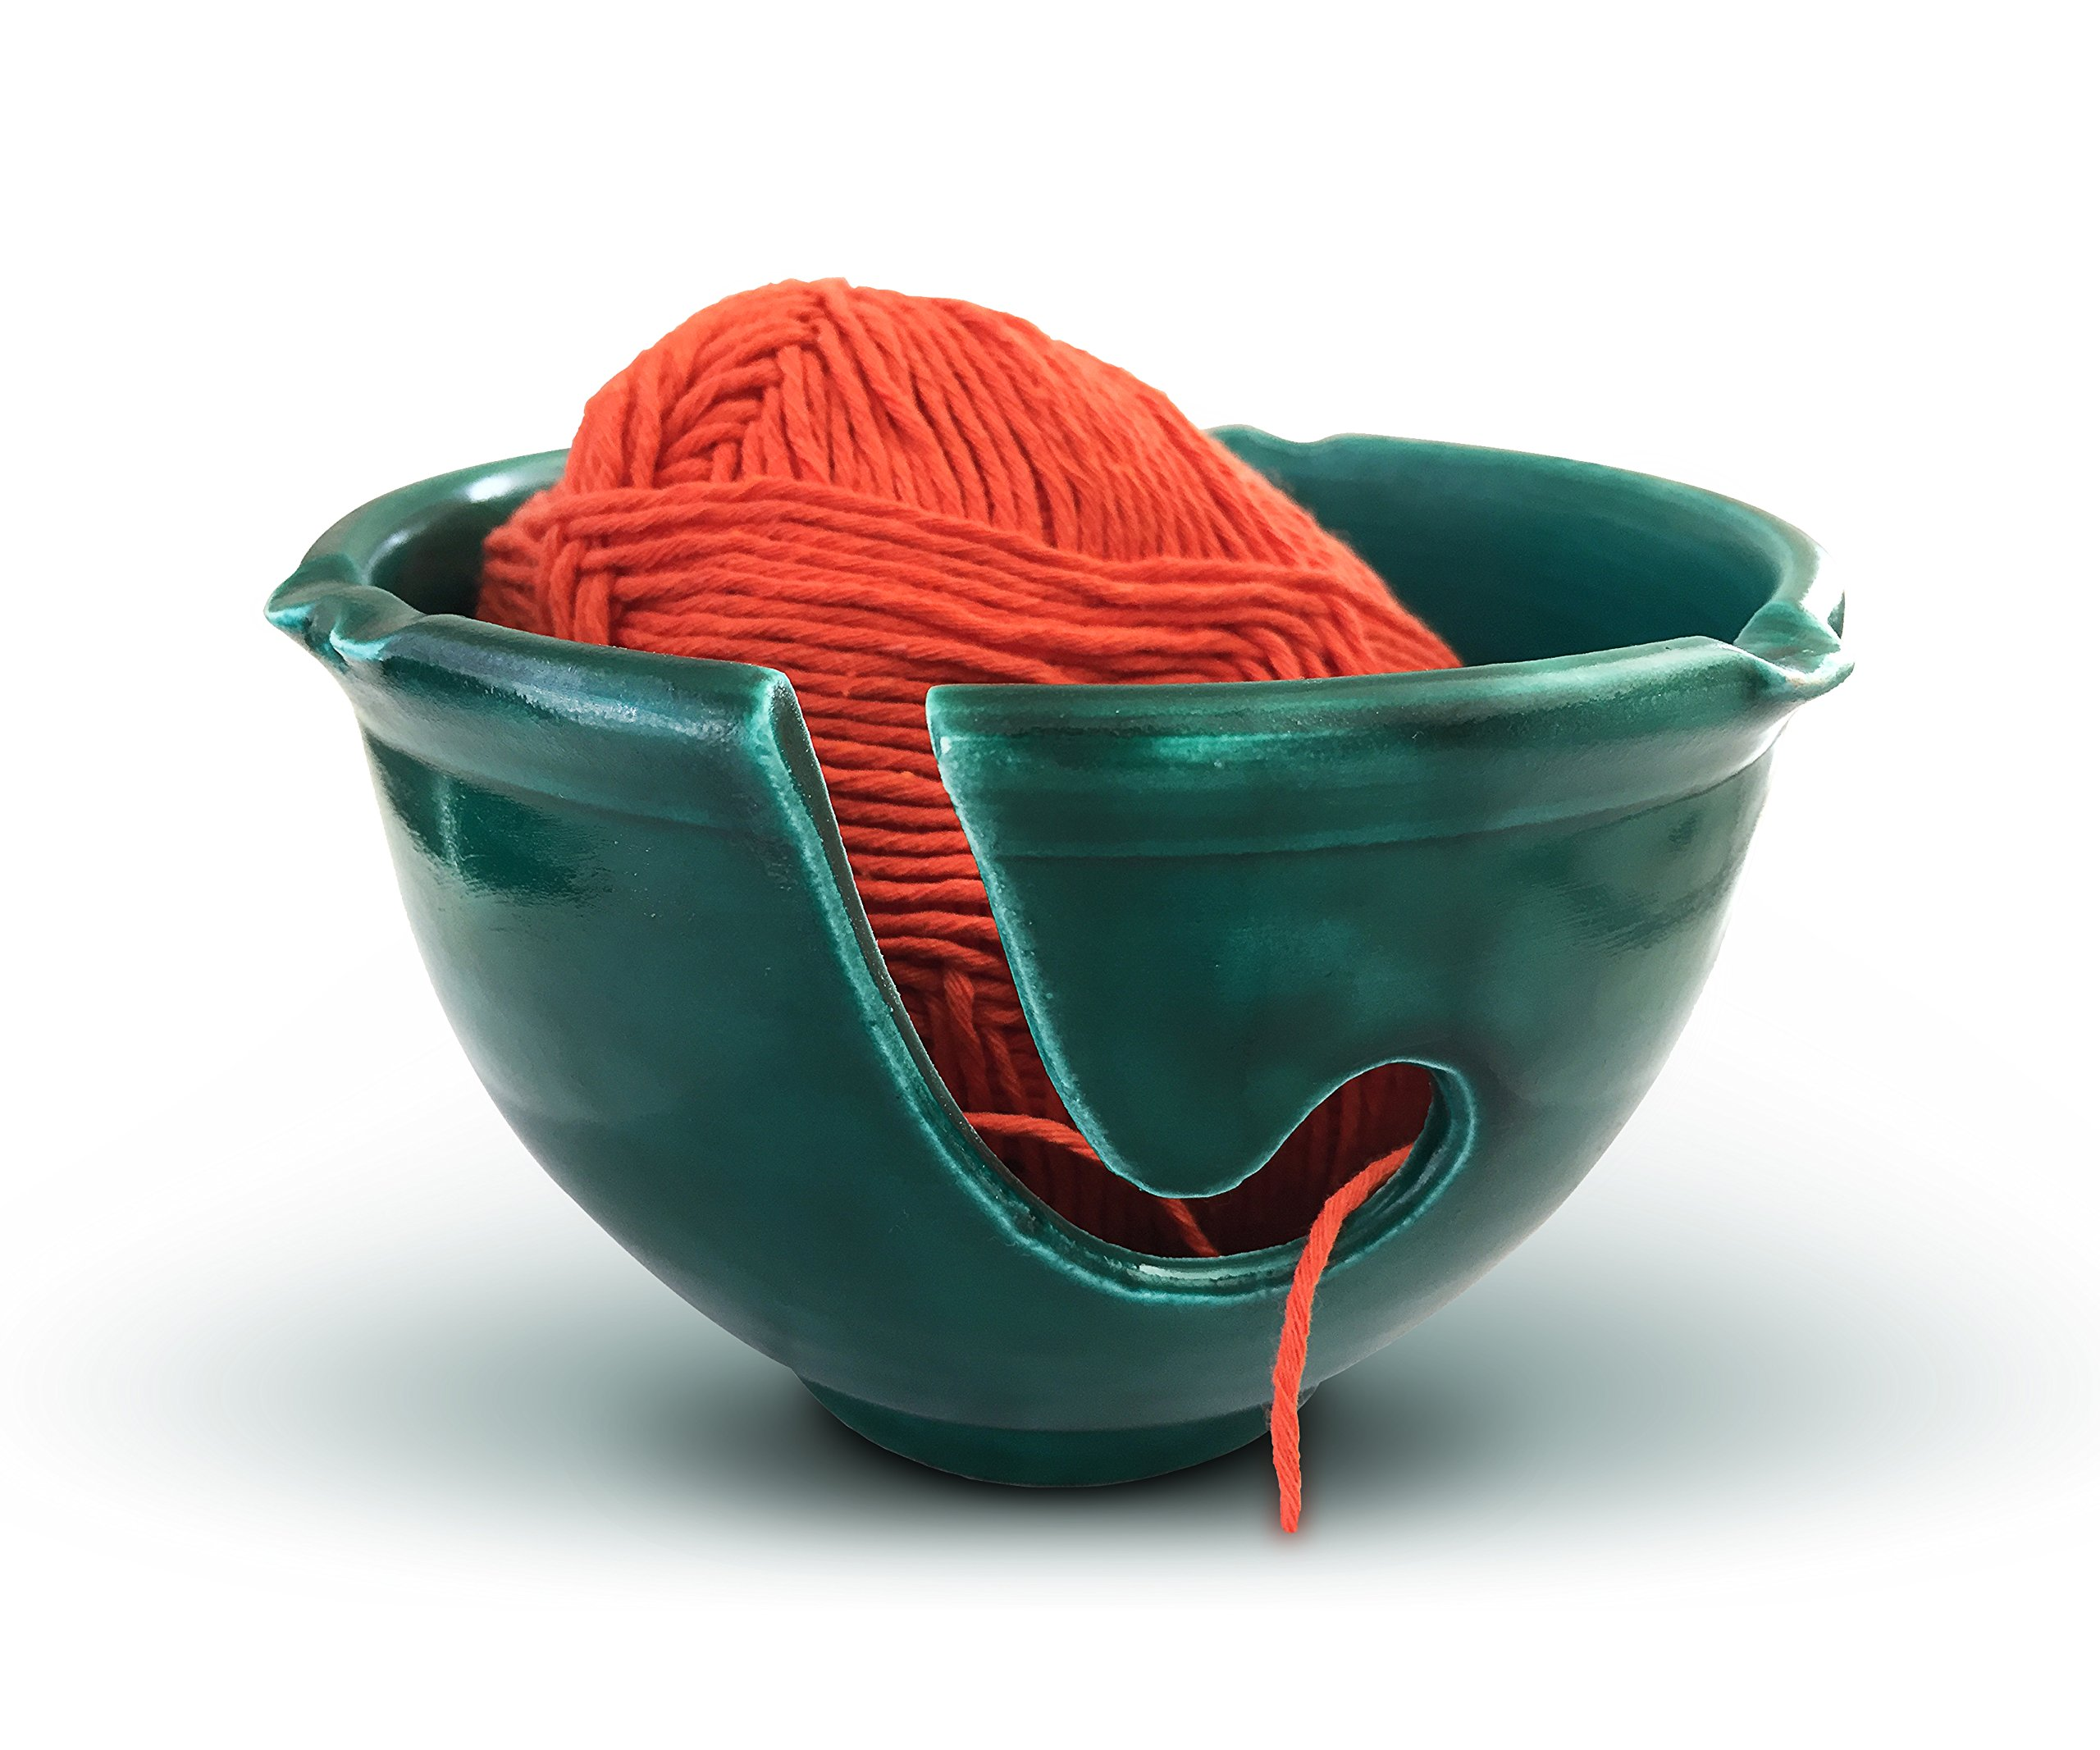 Knitting Yarn Bowl Ceramic and Knitting Bag Bundle, Storage Organizer, Holder for Knitting and Crochet, Yarn Holder with Knit Drawstring Bag, Knitting Bowl Handmade Forest Green by Yarn Story